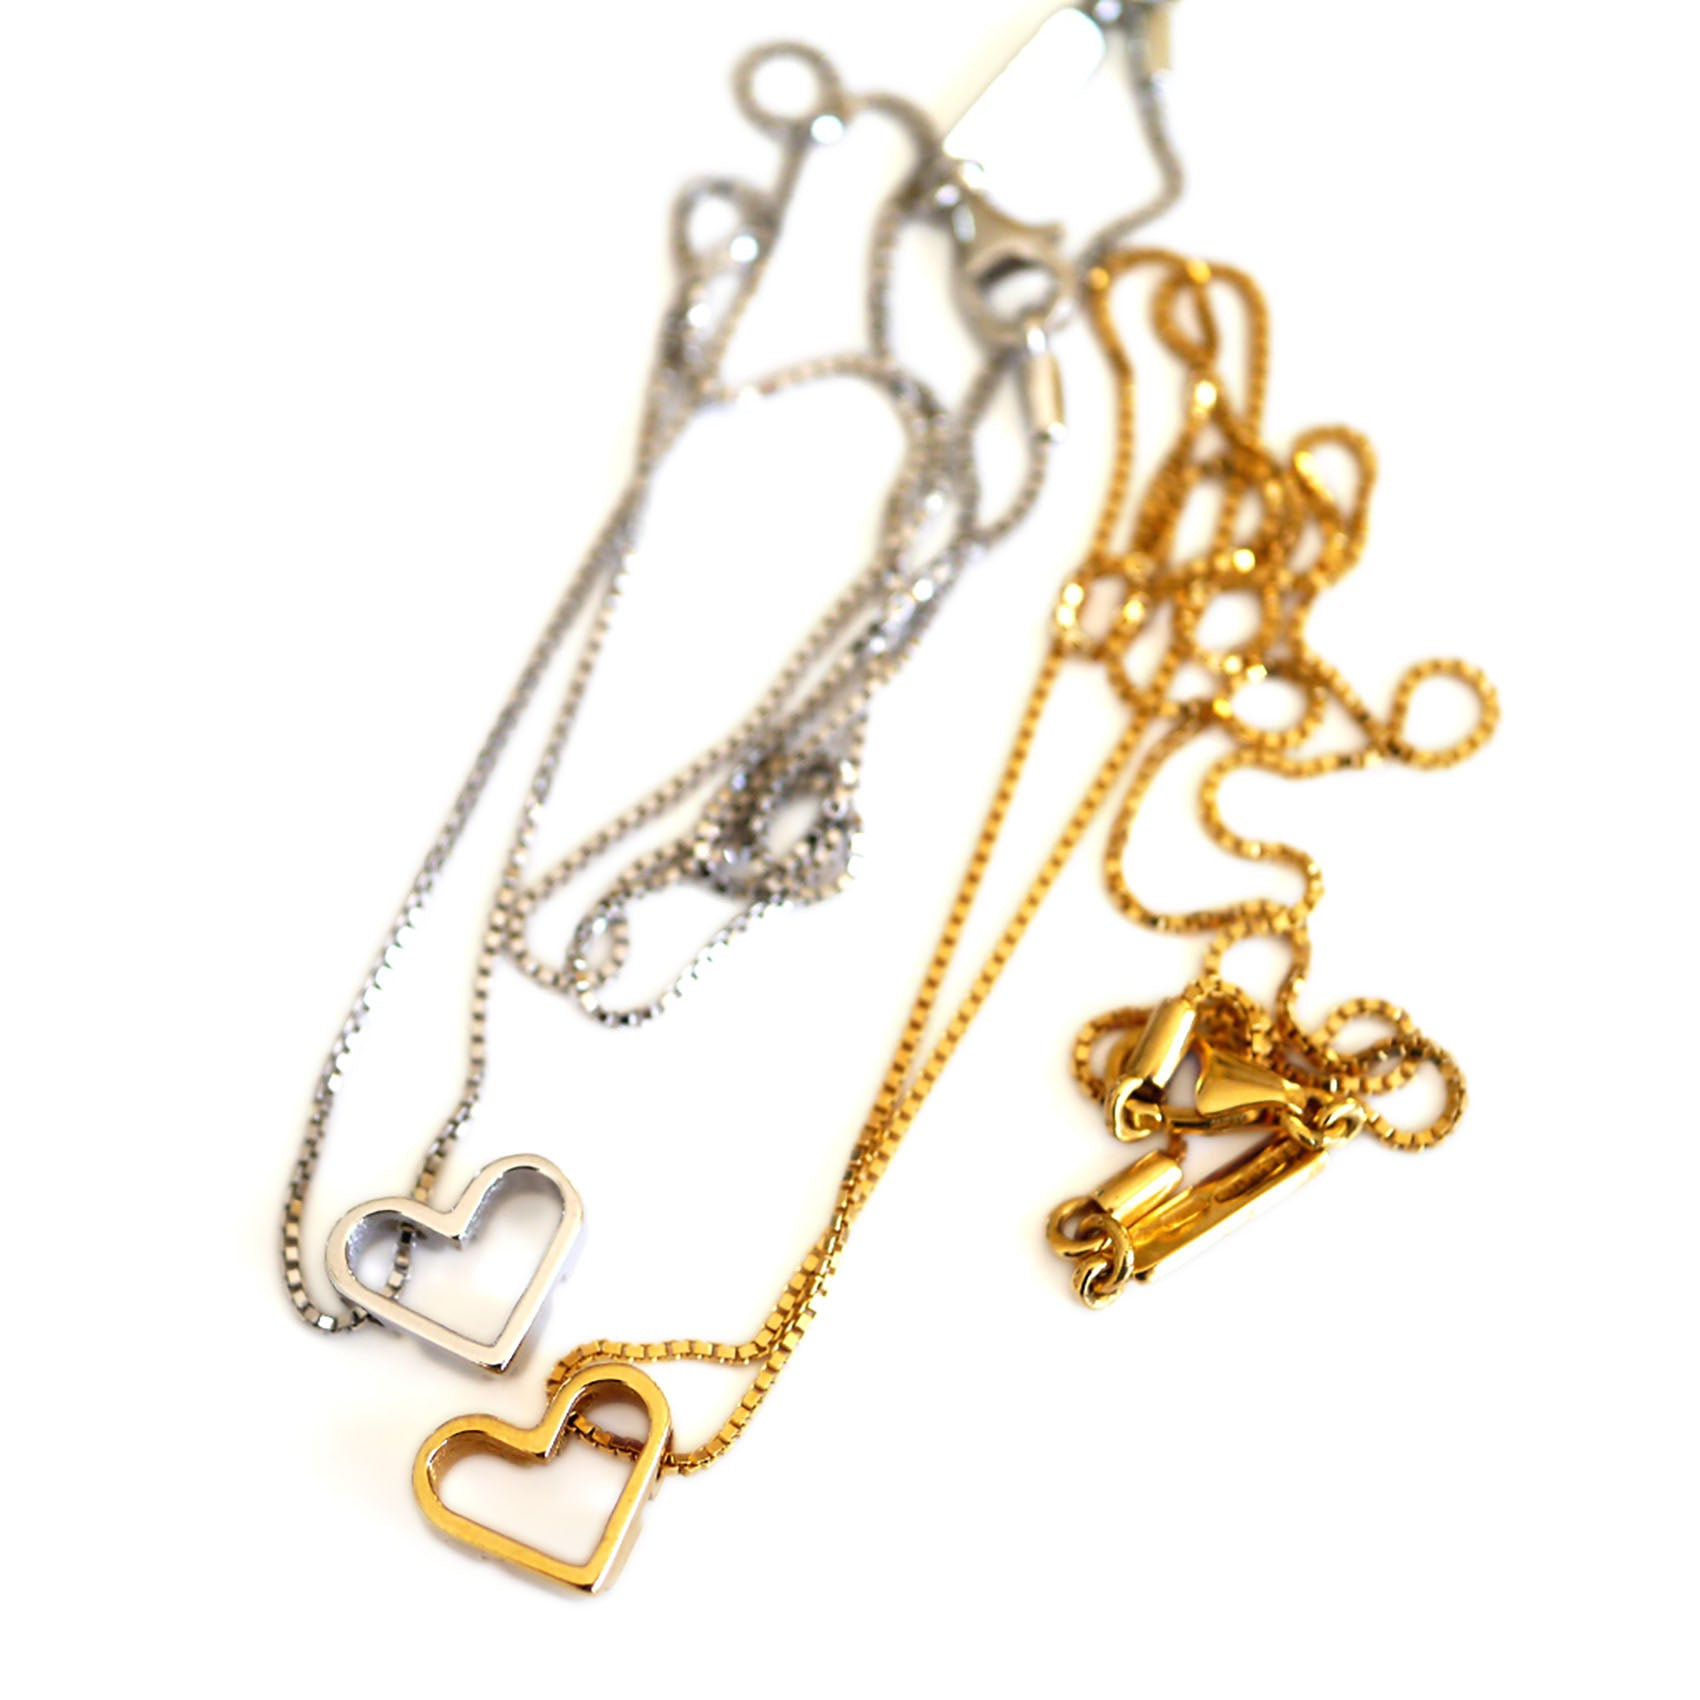 Gold Glorious Gold: Beating Heart Necklaces